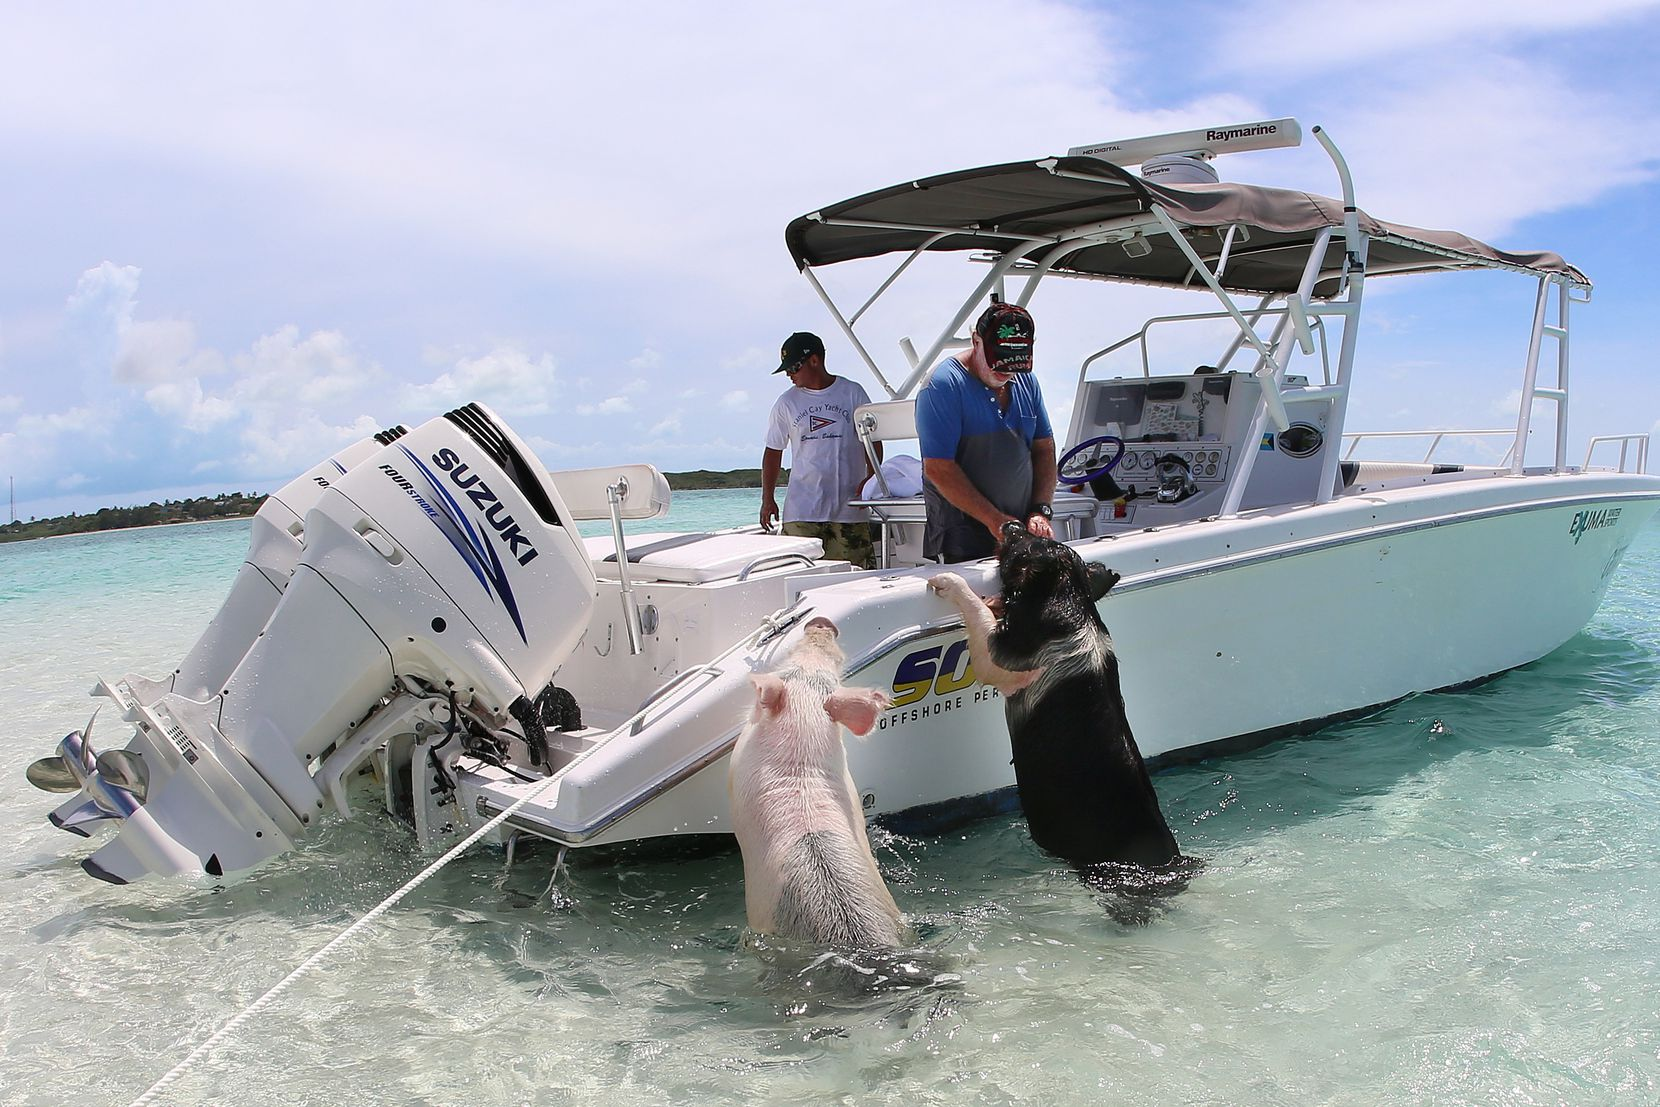 Tour boat captains know the pigs are their meal ticket. The pigs often get some food out of the deal, as well.